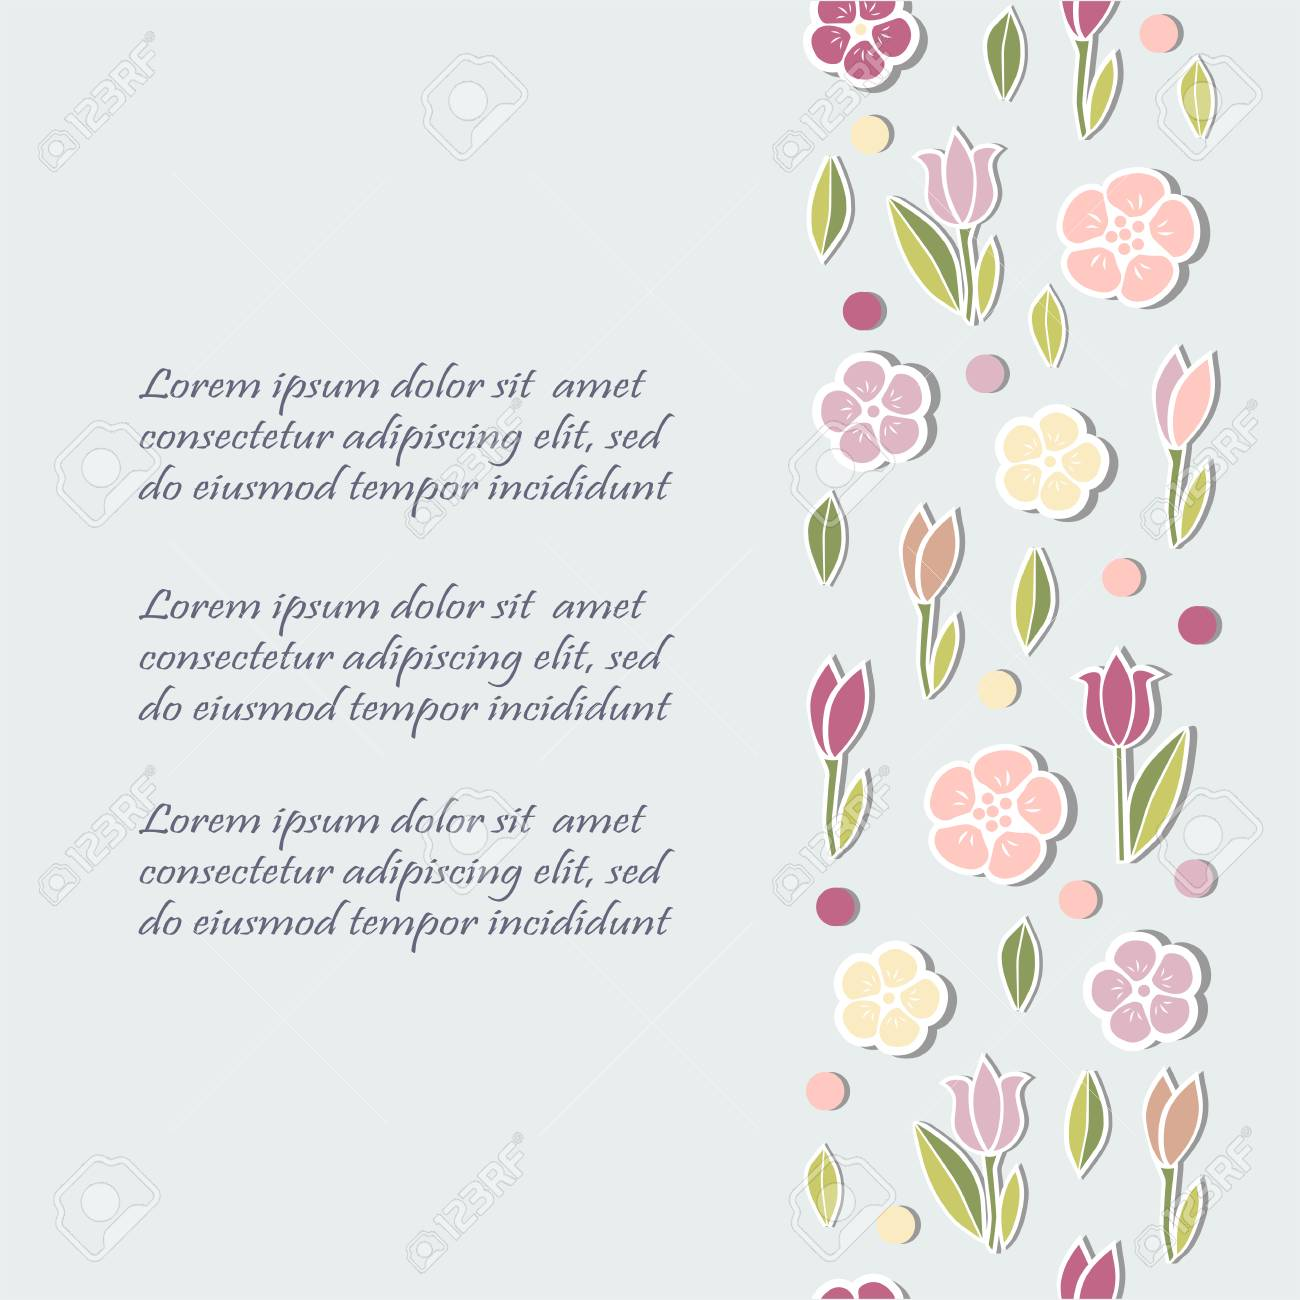 Template With Flowers For Party Invitation, Greeting Card, Postcard ...